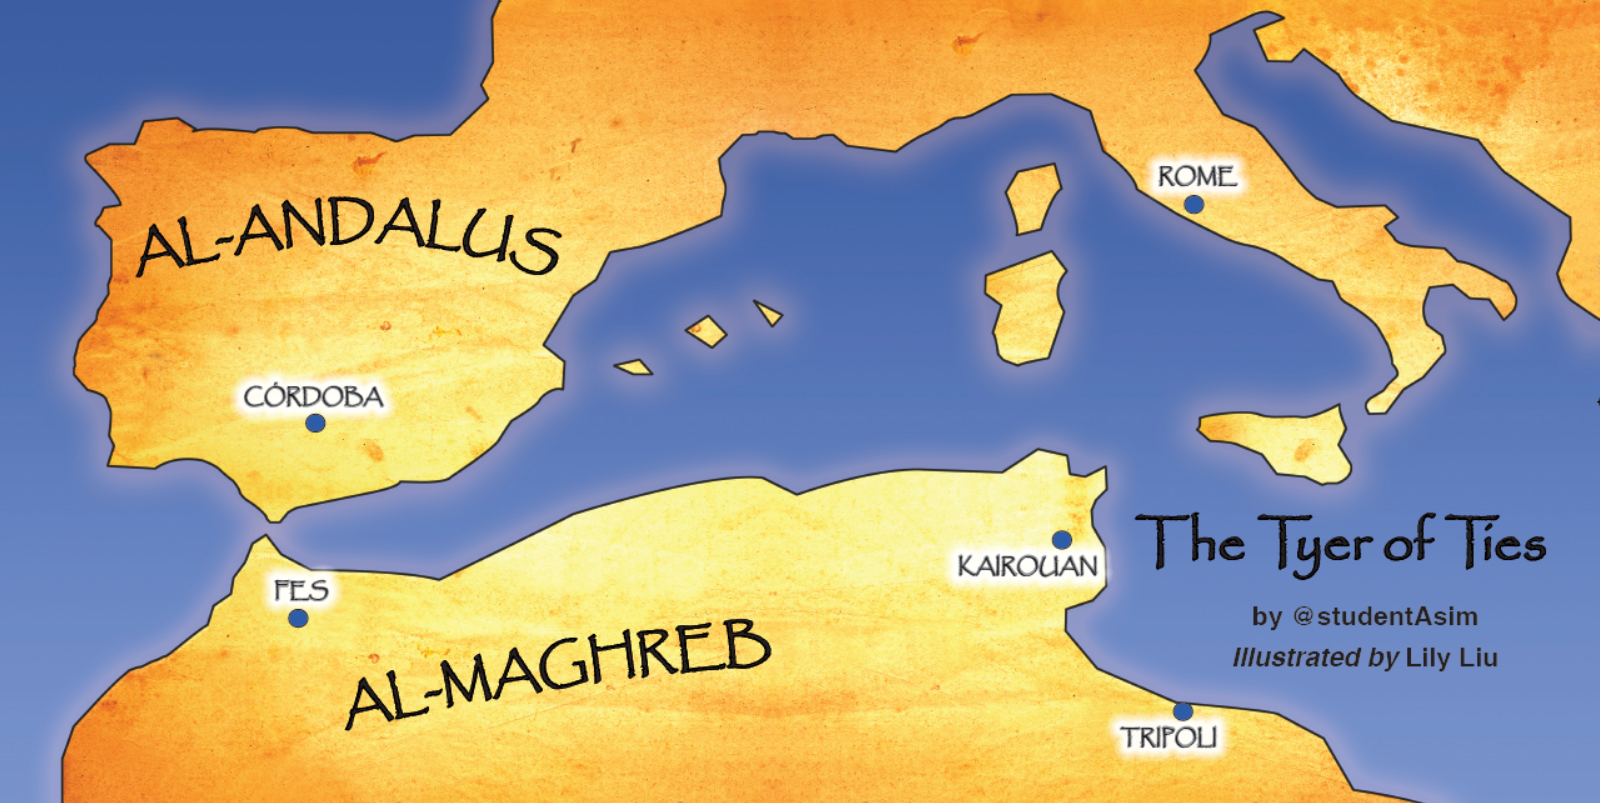 A map of Al-Andalus and surrounding areas from The Tyer of Ties